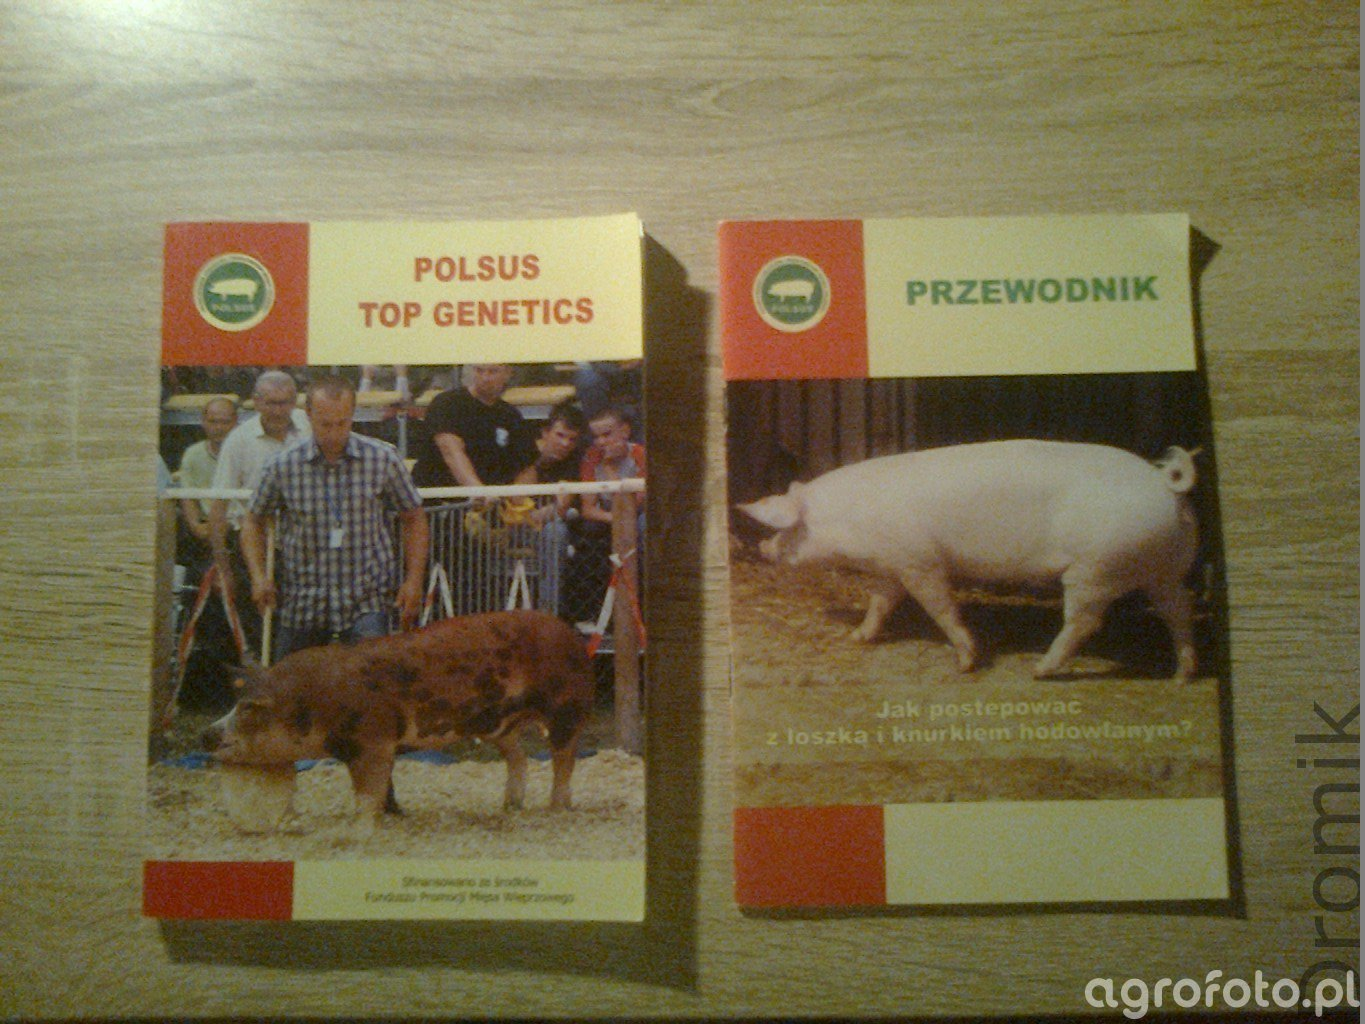 Polsus Top Genetics